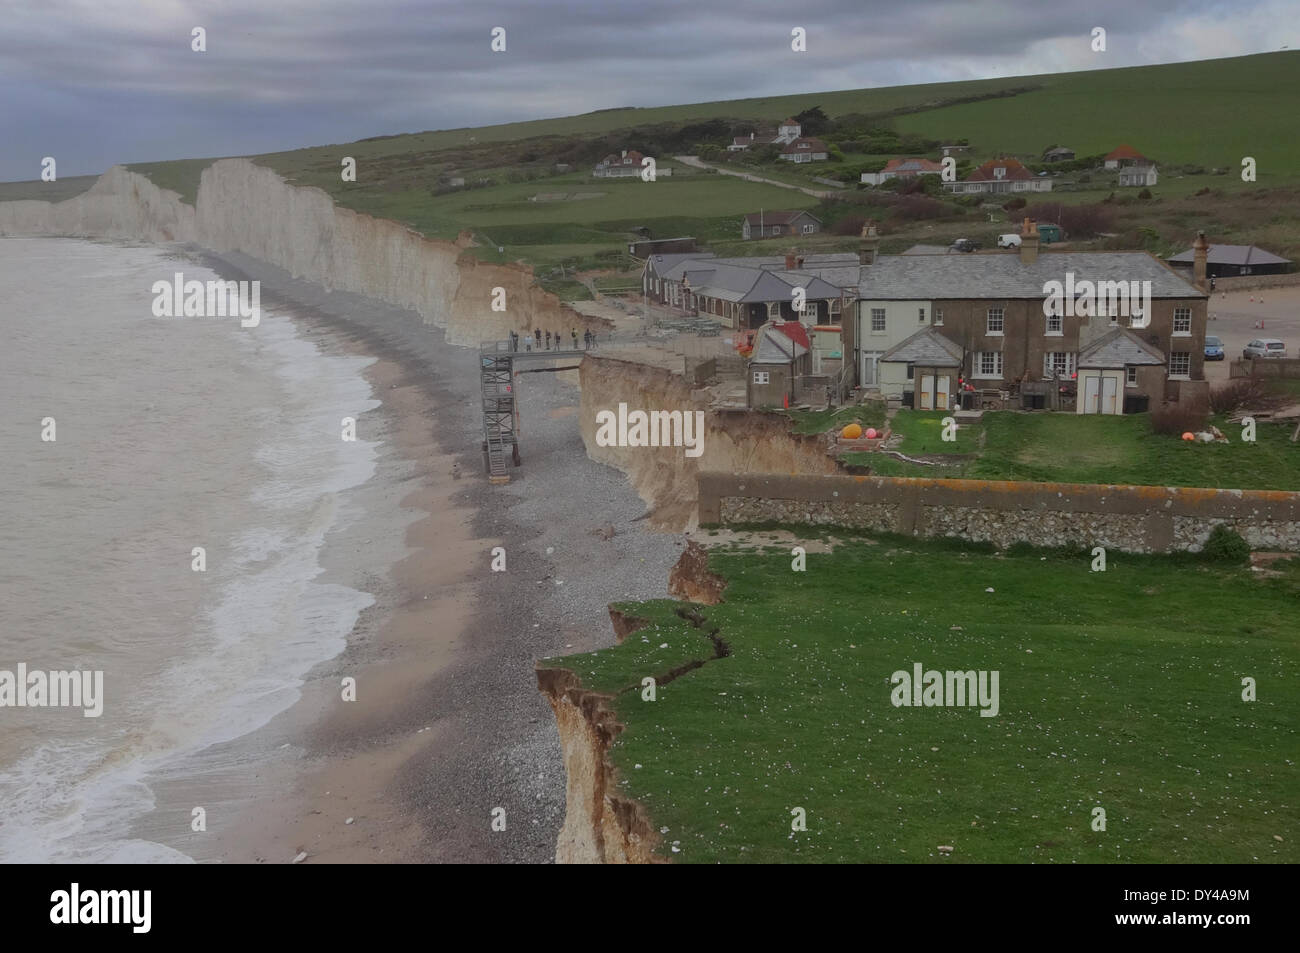 Birling Gap,East Sussex, UK. 6April 2014. Coastguard cottage no3 outhouse stands alone on the cliff edge as demolition nears the final stages.The cliff face still hangs on. Photographer used specialist equipment and did not take risks.David Burr/Alamy Live News - Stock Image